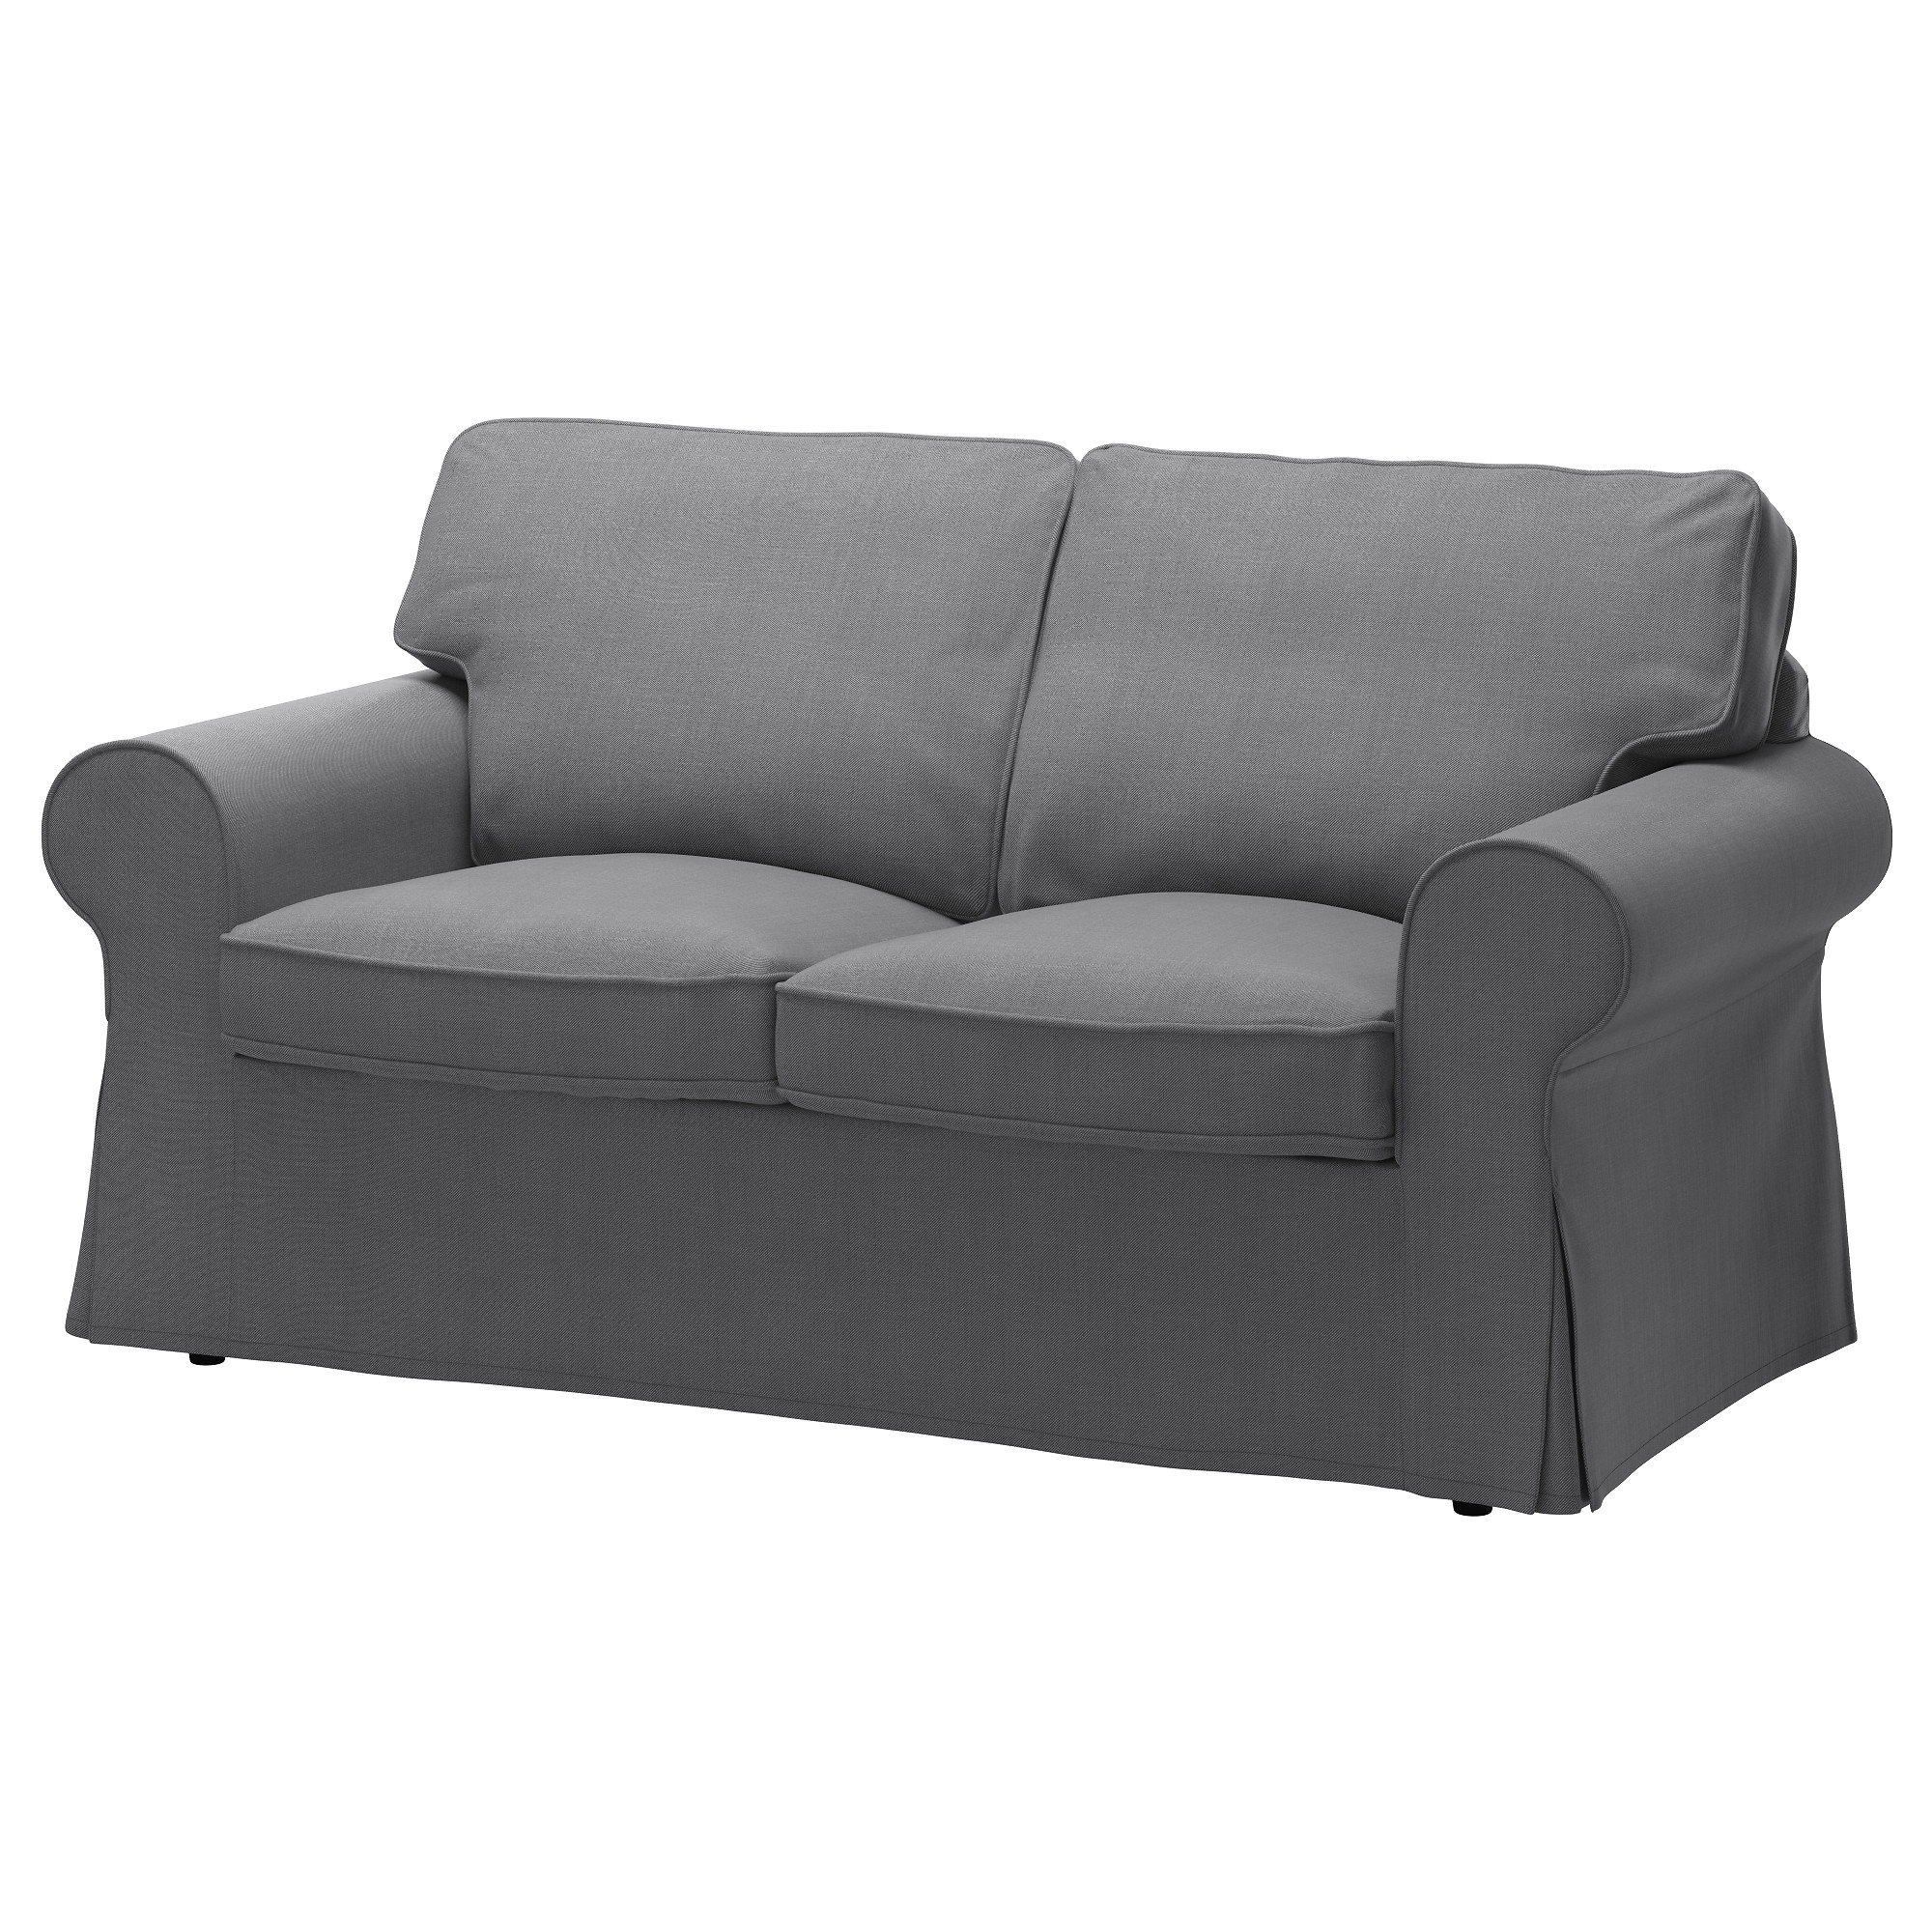 Ektorp Loveseat Cover Nordvalla Dark Beige Ikea Regarding Sofa With Removable Cover (Image 5 of 15)